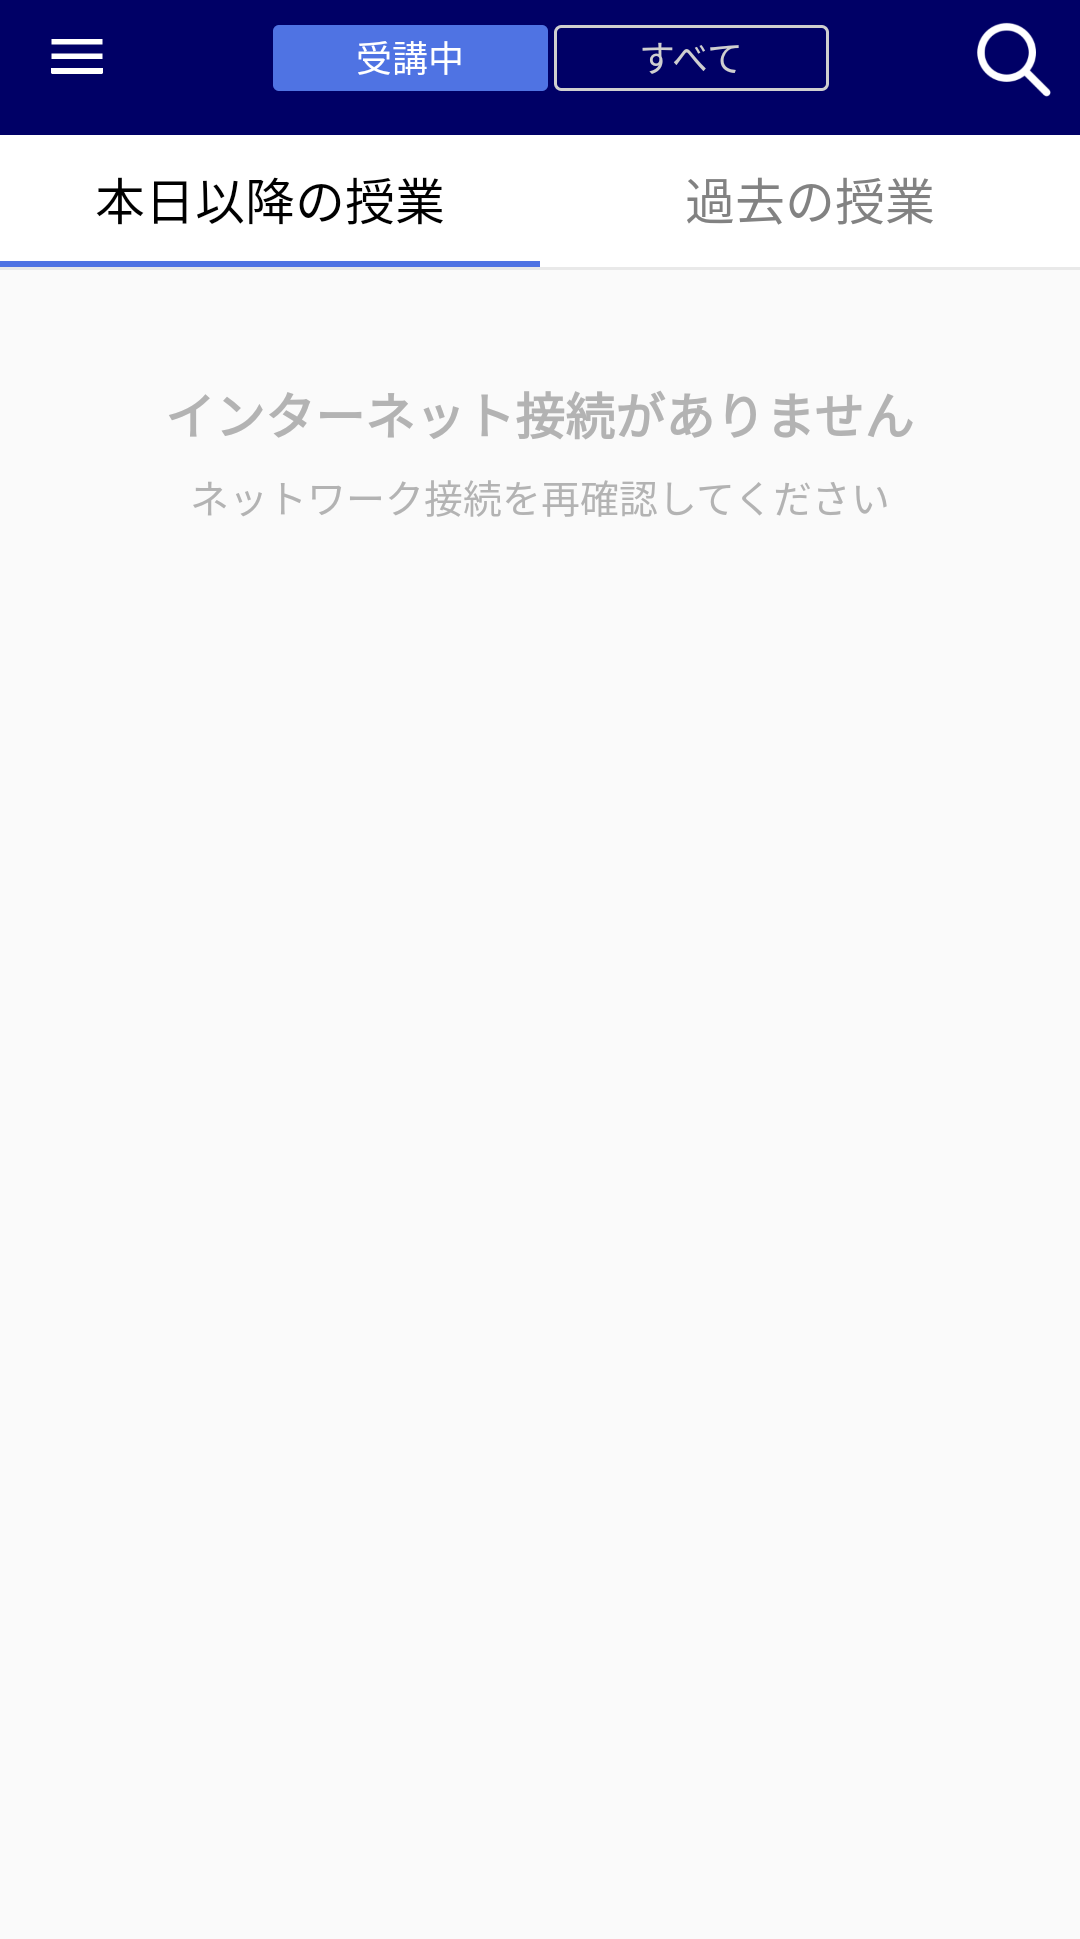 device-2019-12-02-125750.png